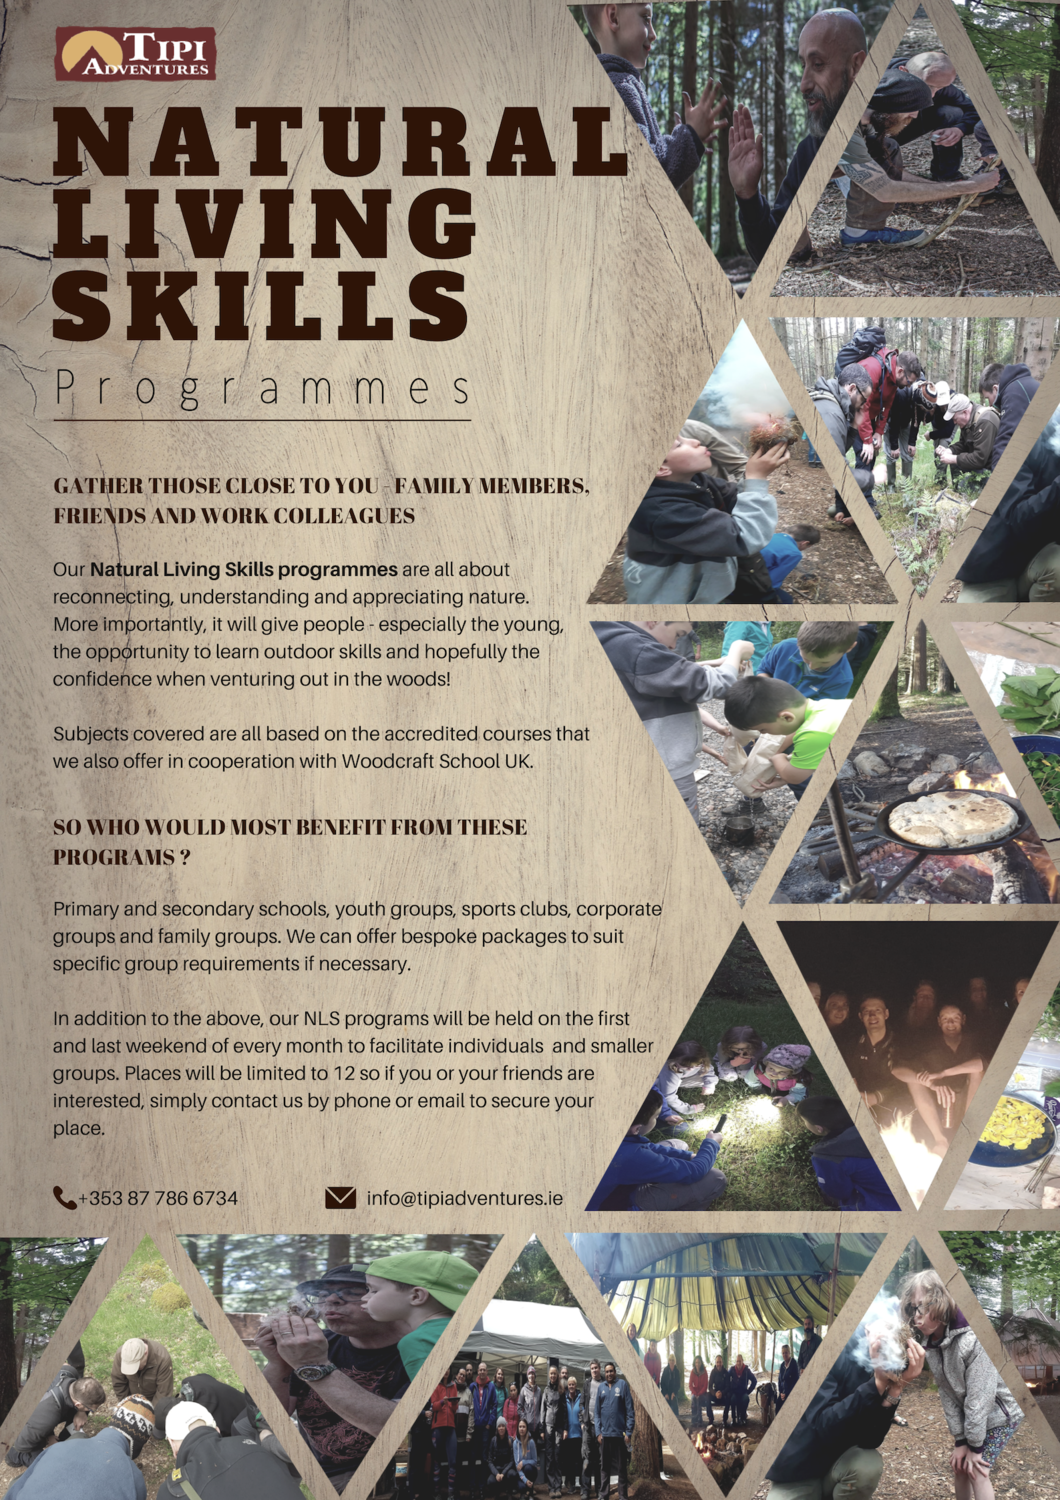 Natural Living Skills 2 - 2 day programme with 2 overnight camps and catering